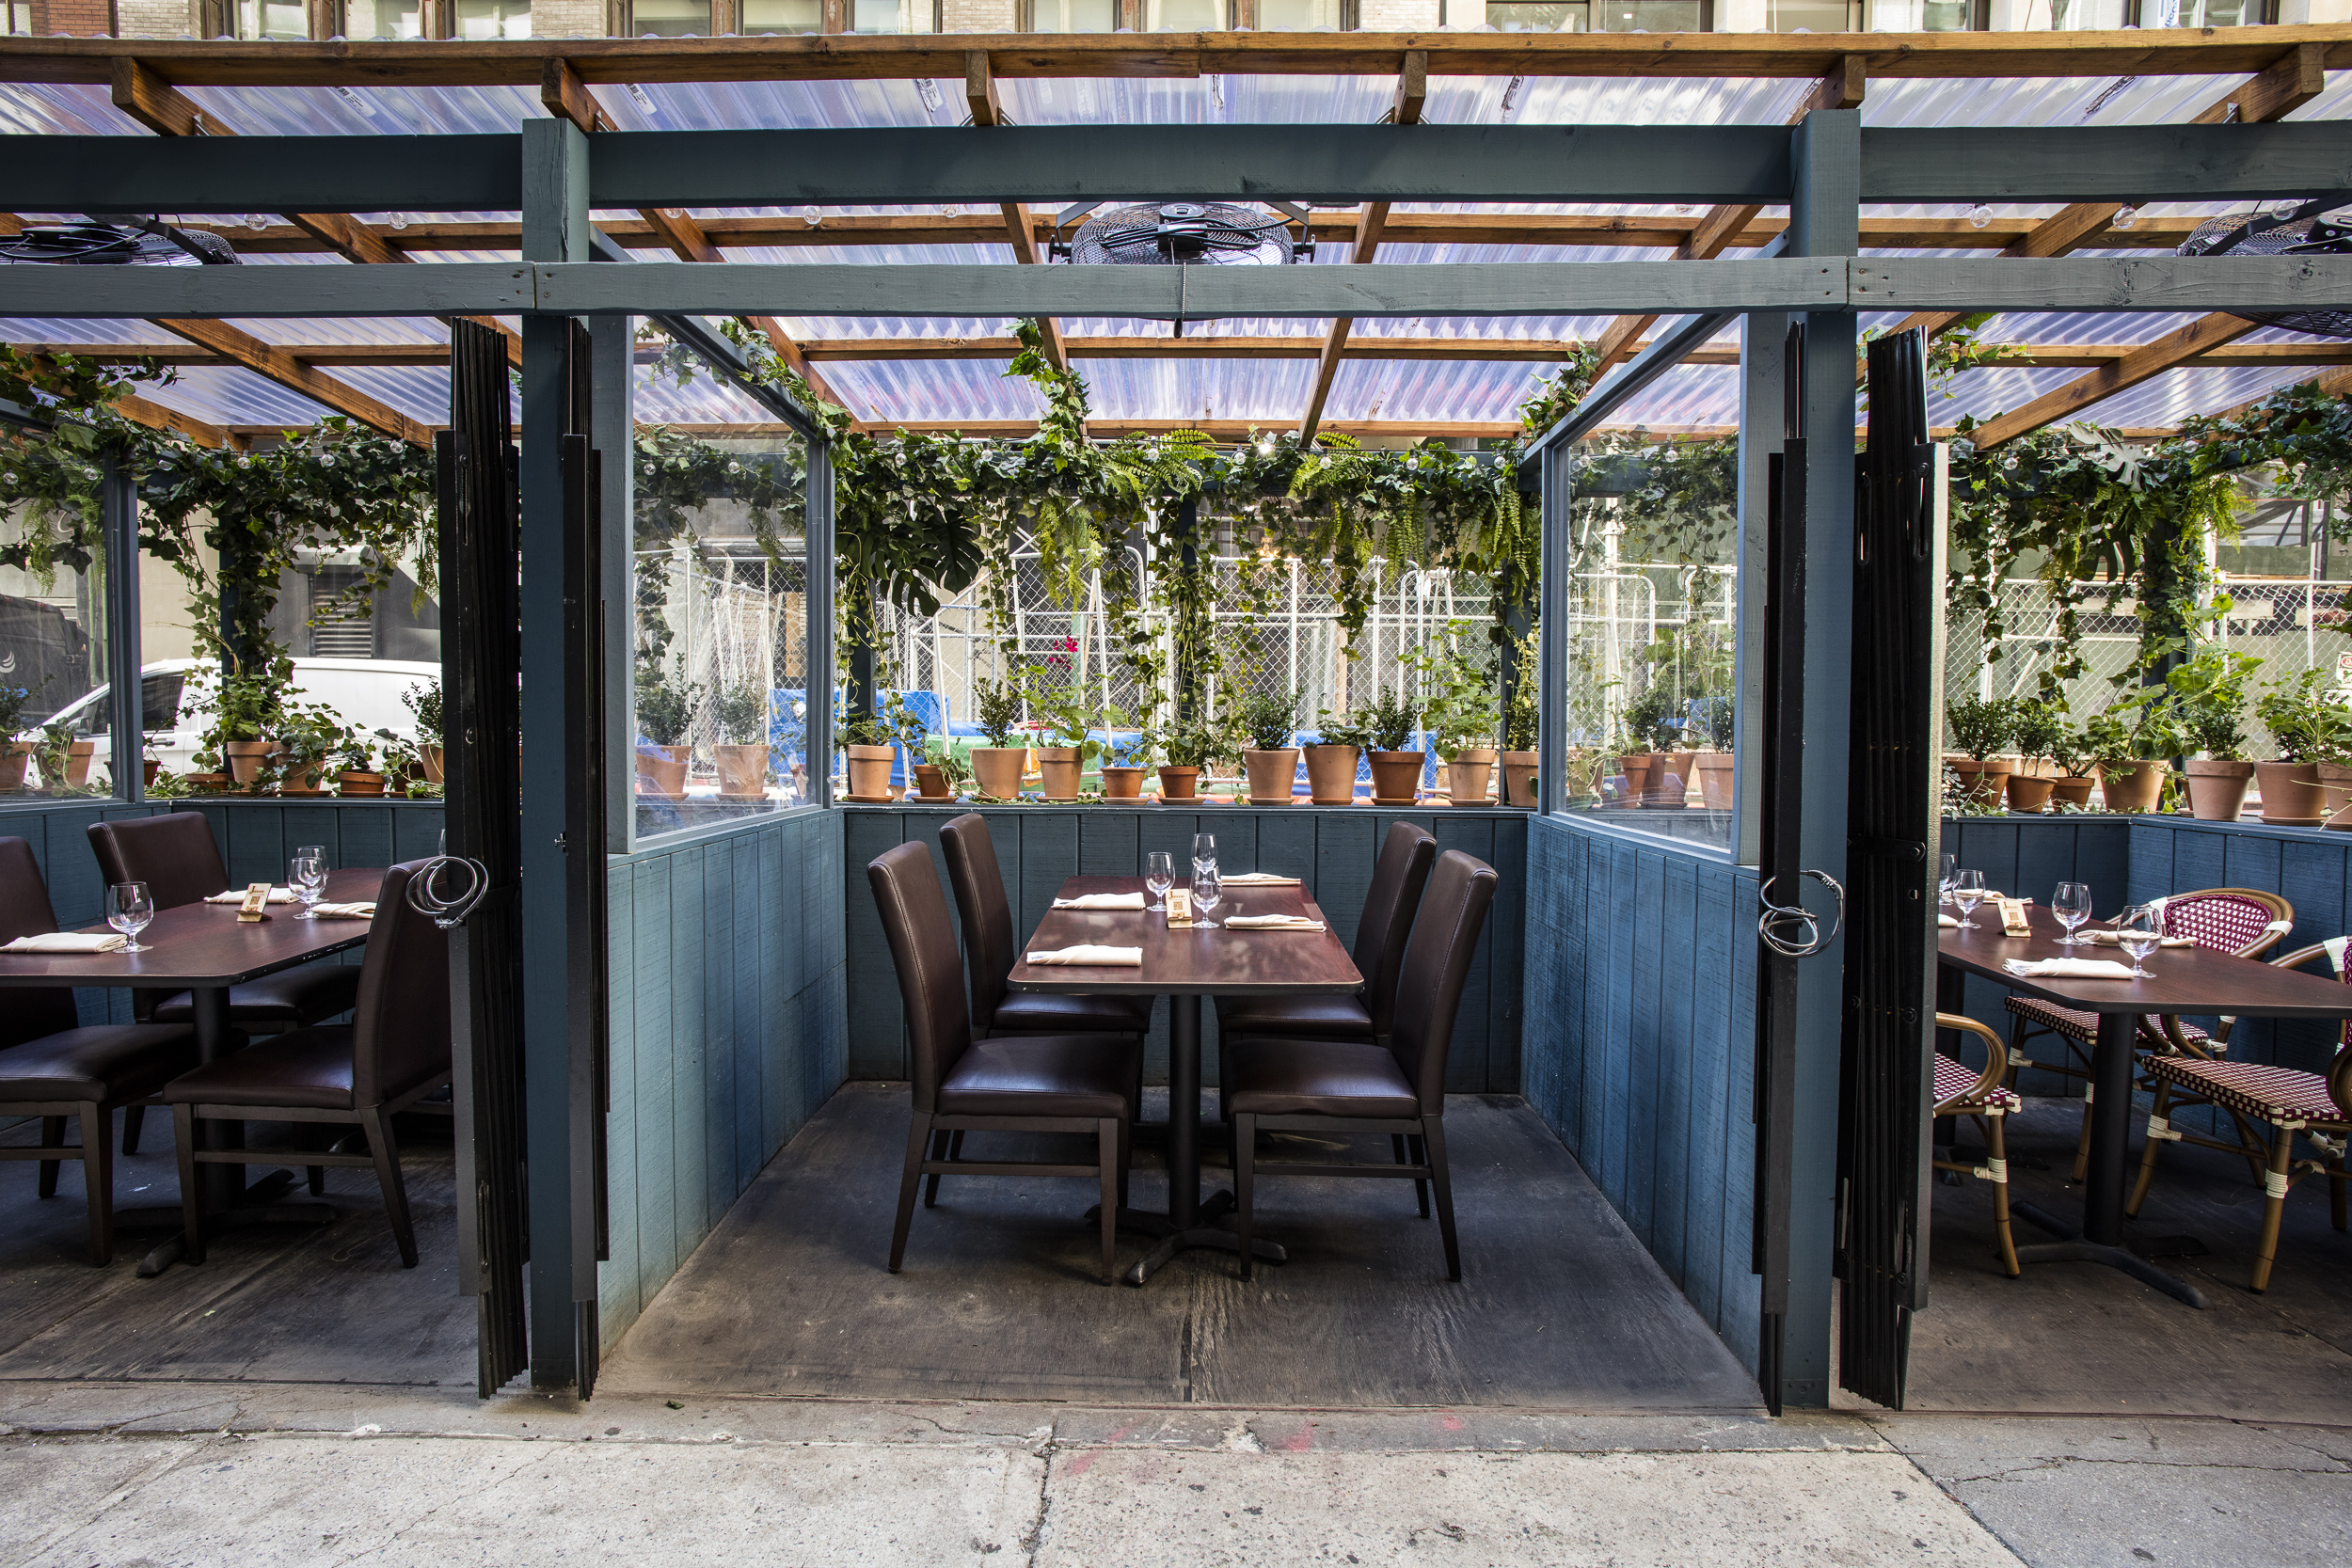 A covered outdoor structure at Jonoon, complete with tables and chairs set for service and hanging plants.